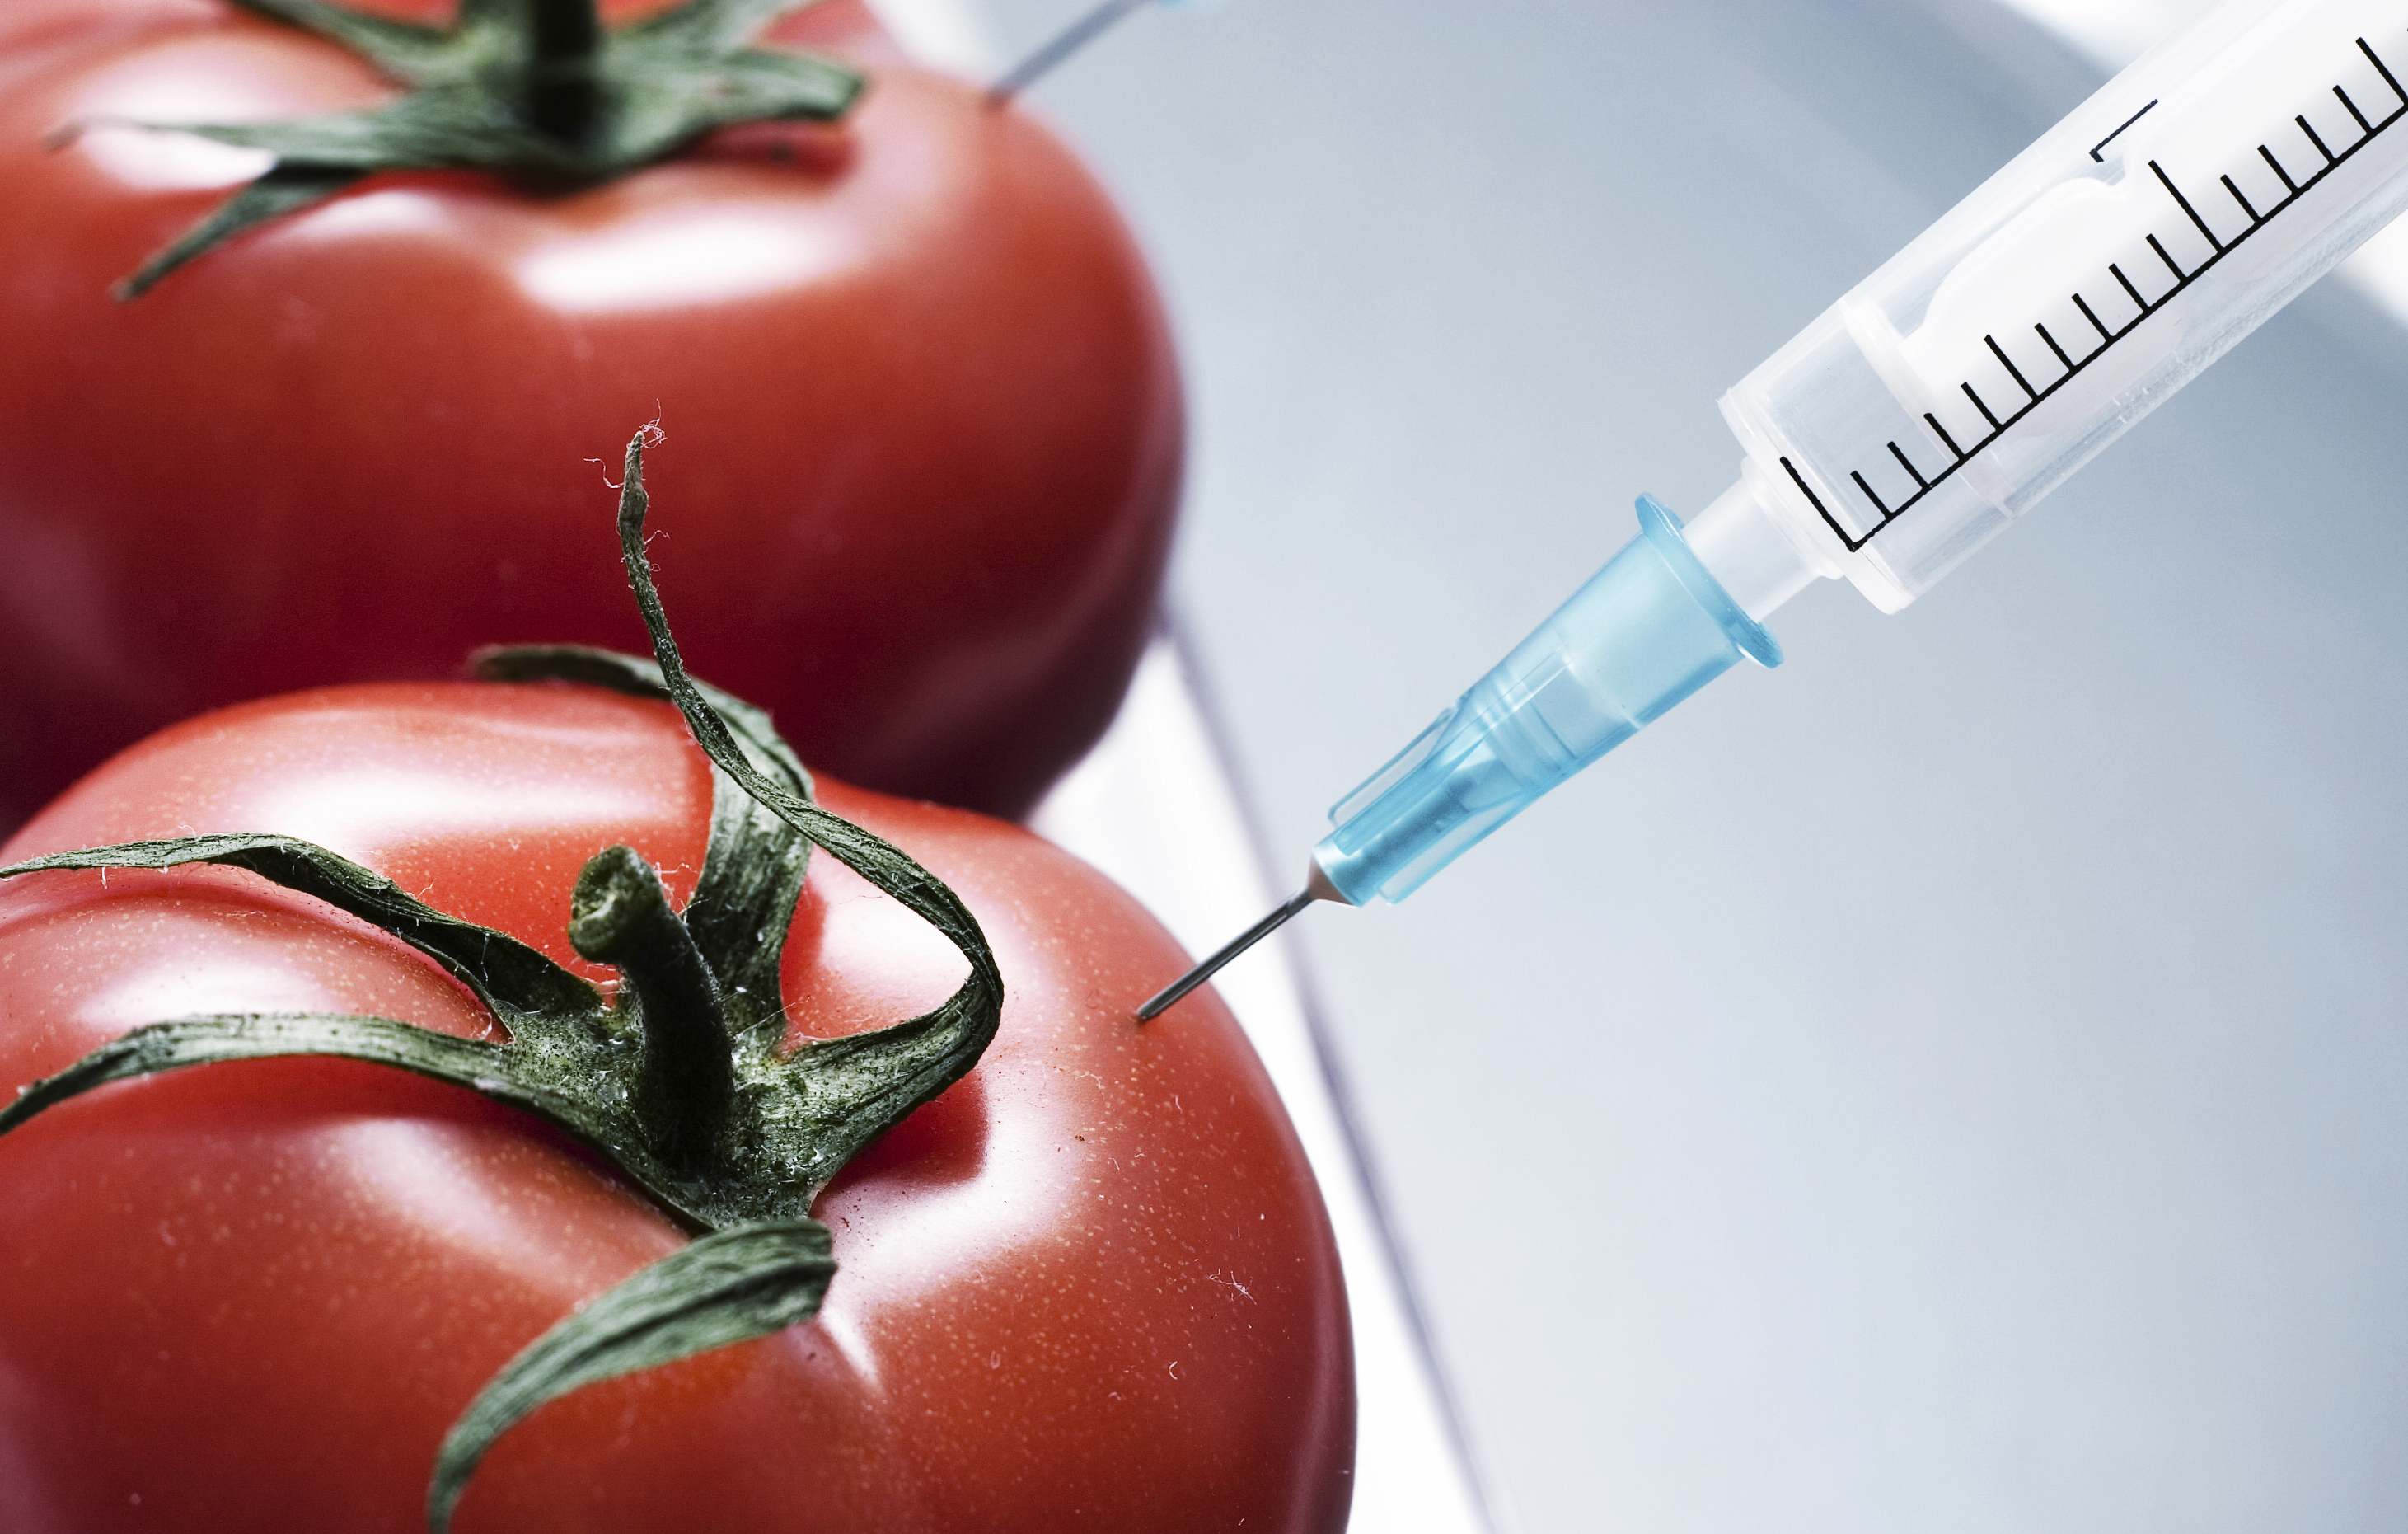 An argument against genetically modified organism gmos